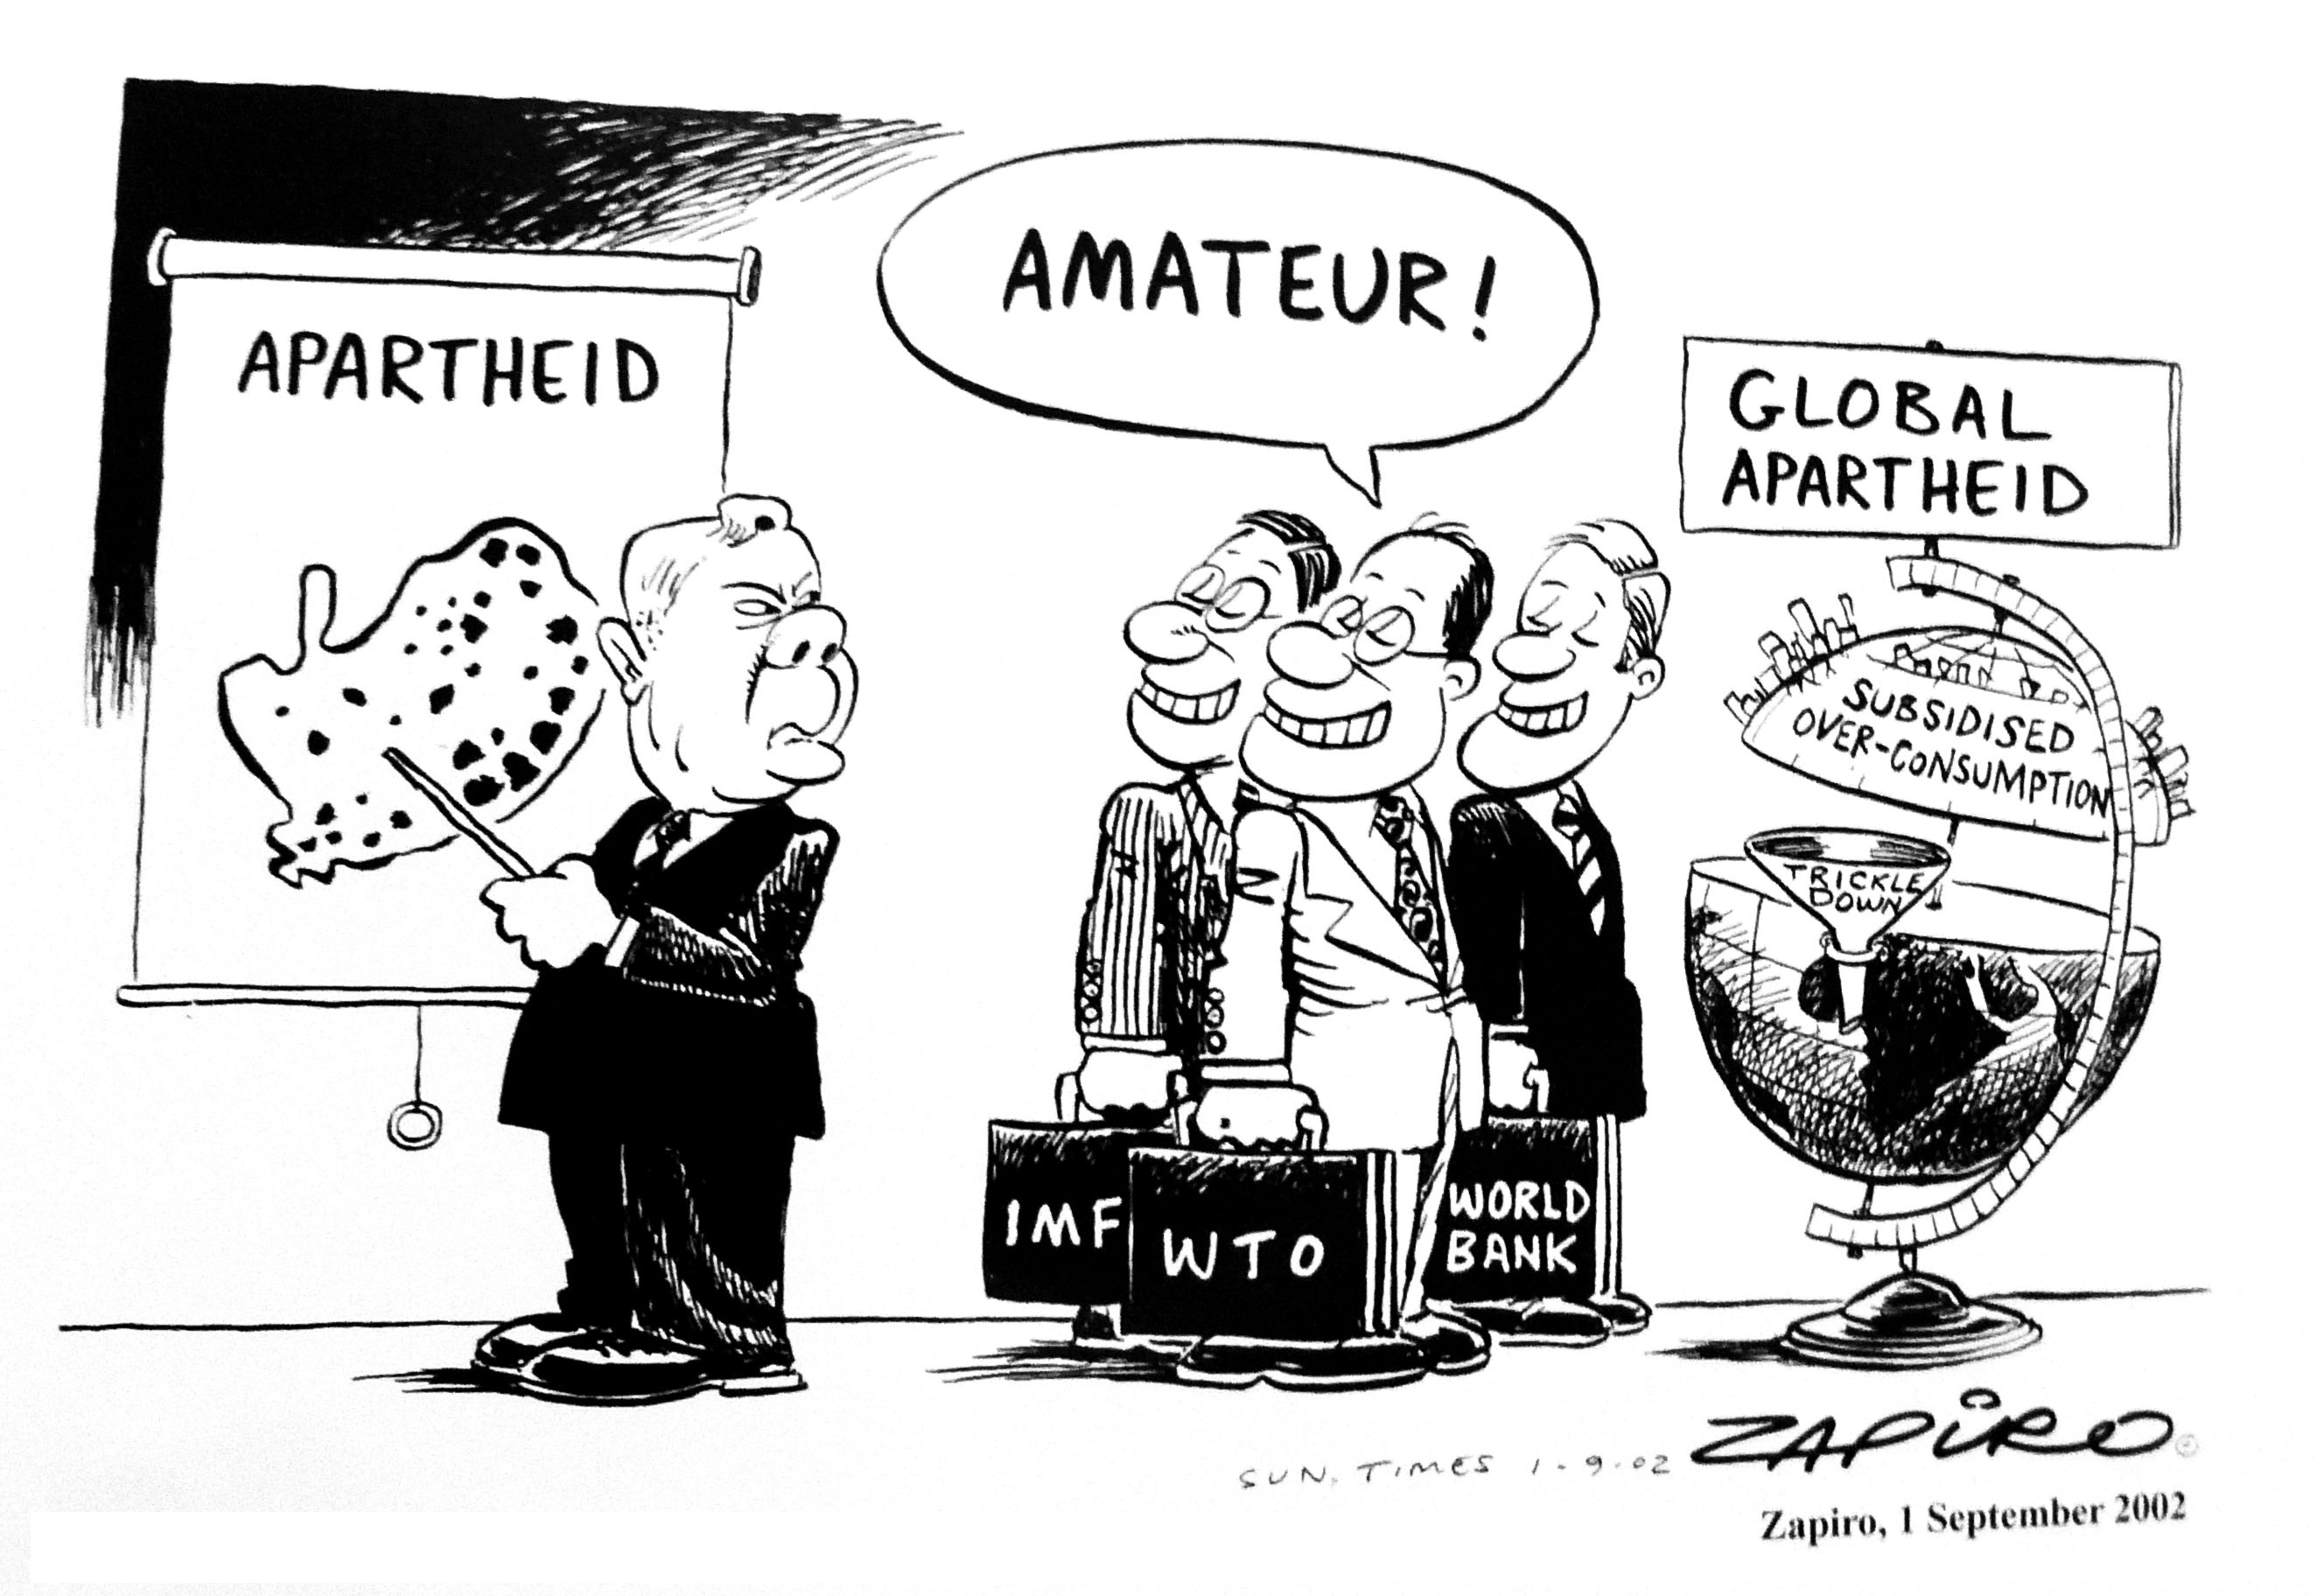 No laughing matter cartoons of South Africa in the world